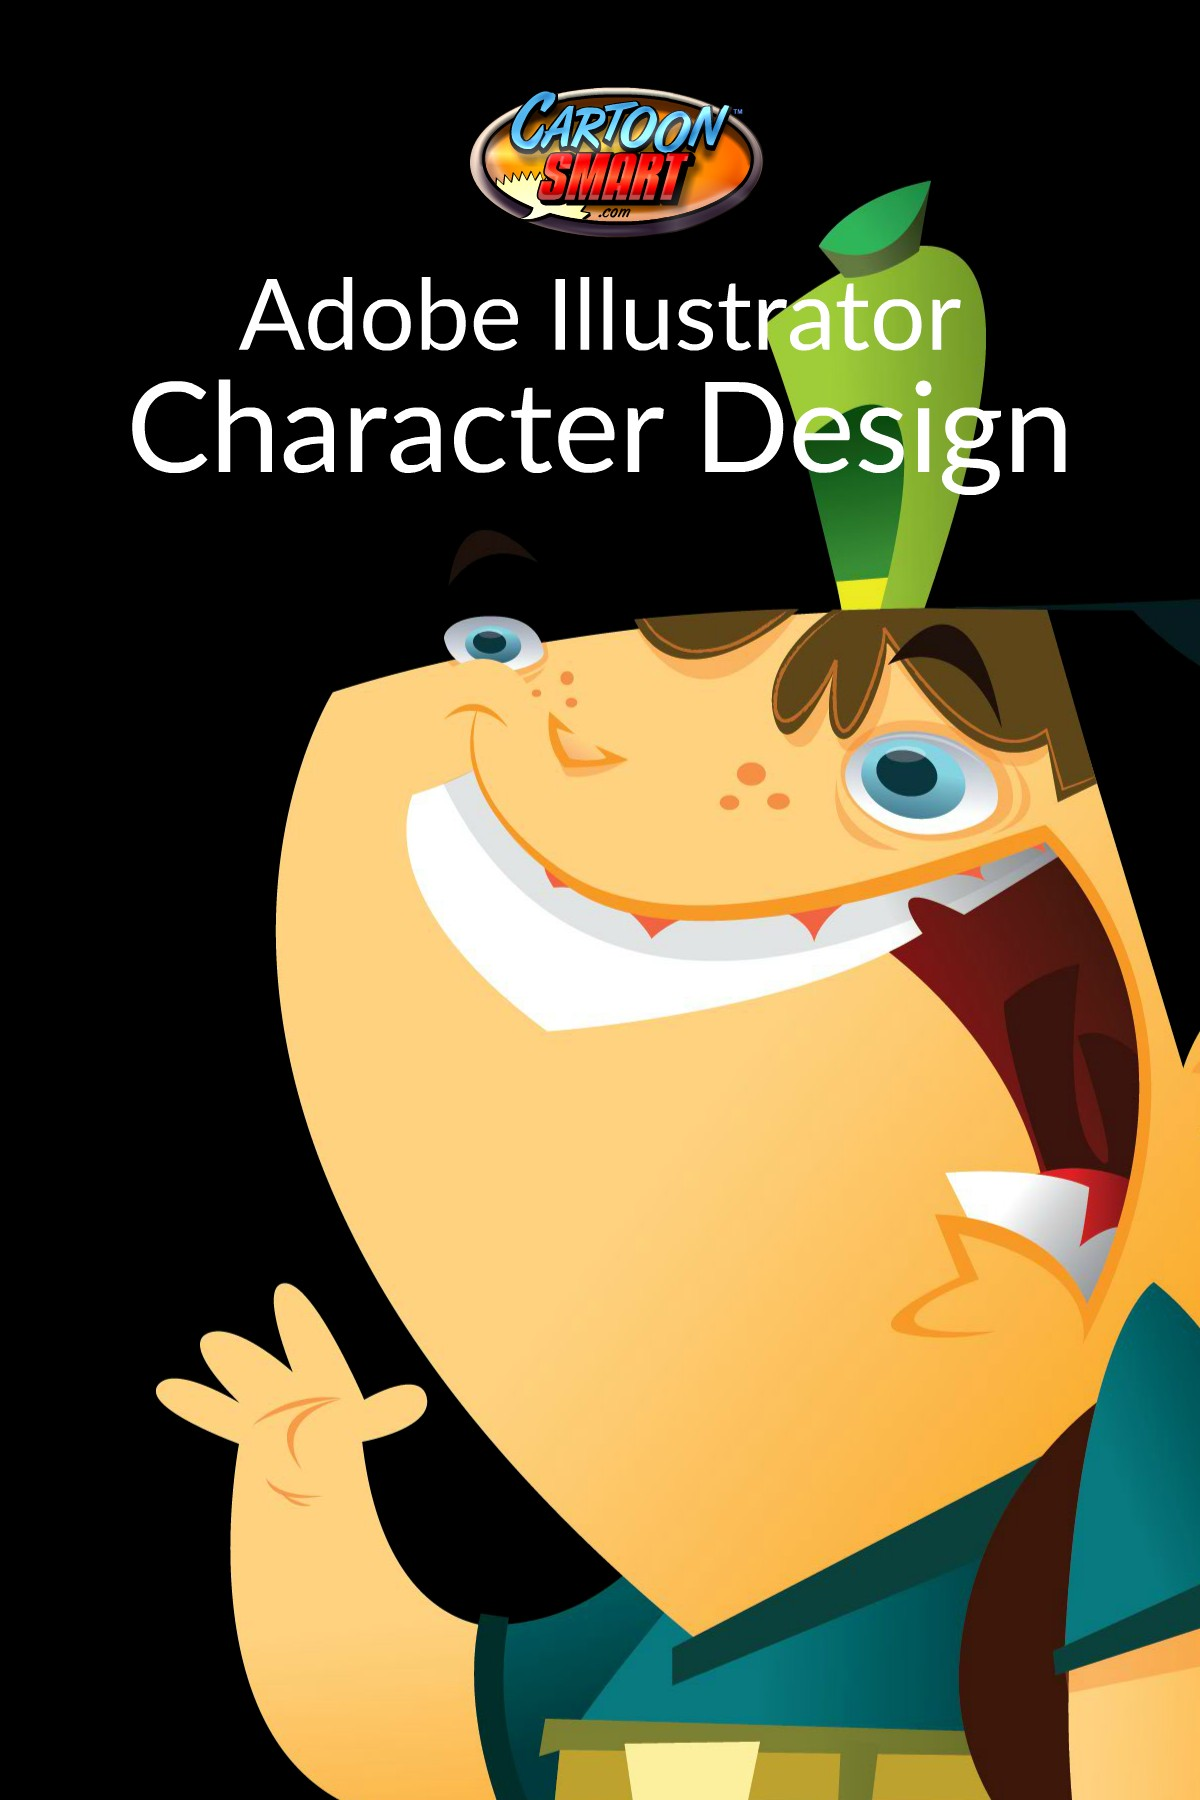 Adobe Illustrator Essentials For Character Design : Adobe illustrator character design subscriber access